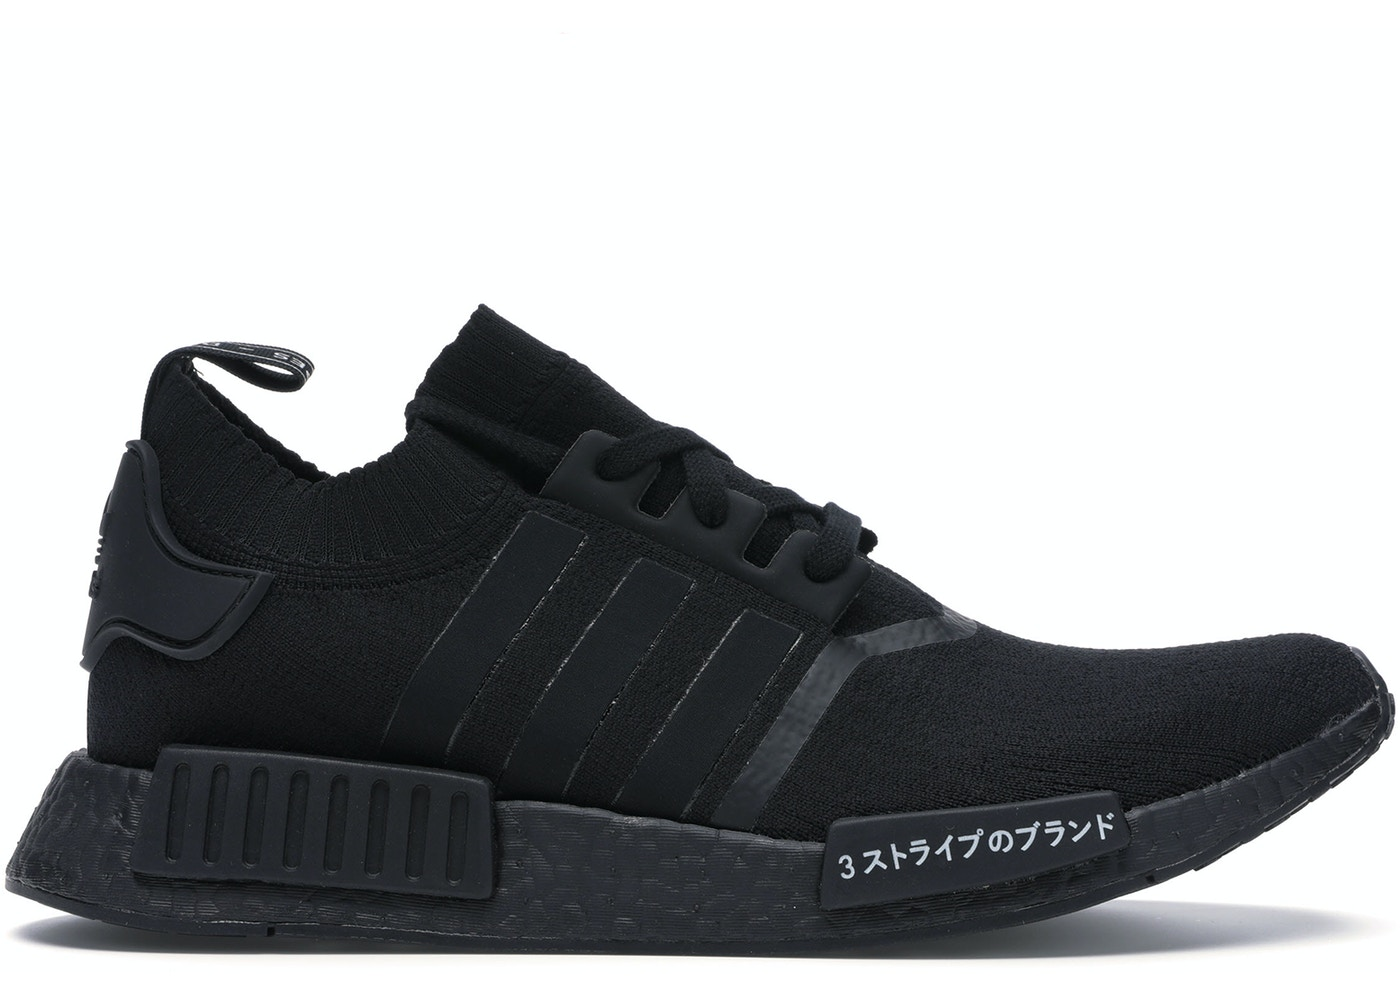 ab67e90a008c1 adidas NMD R1 Japan Triple Black - BZ0220